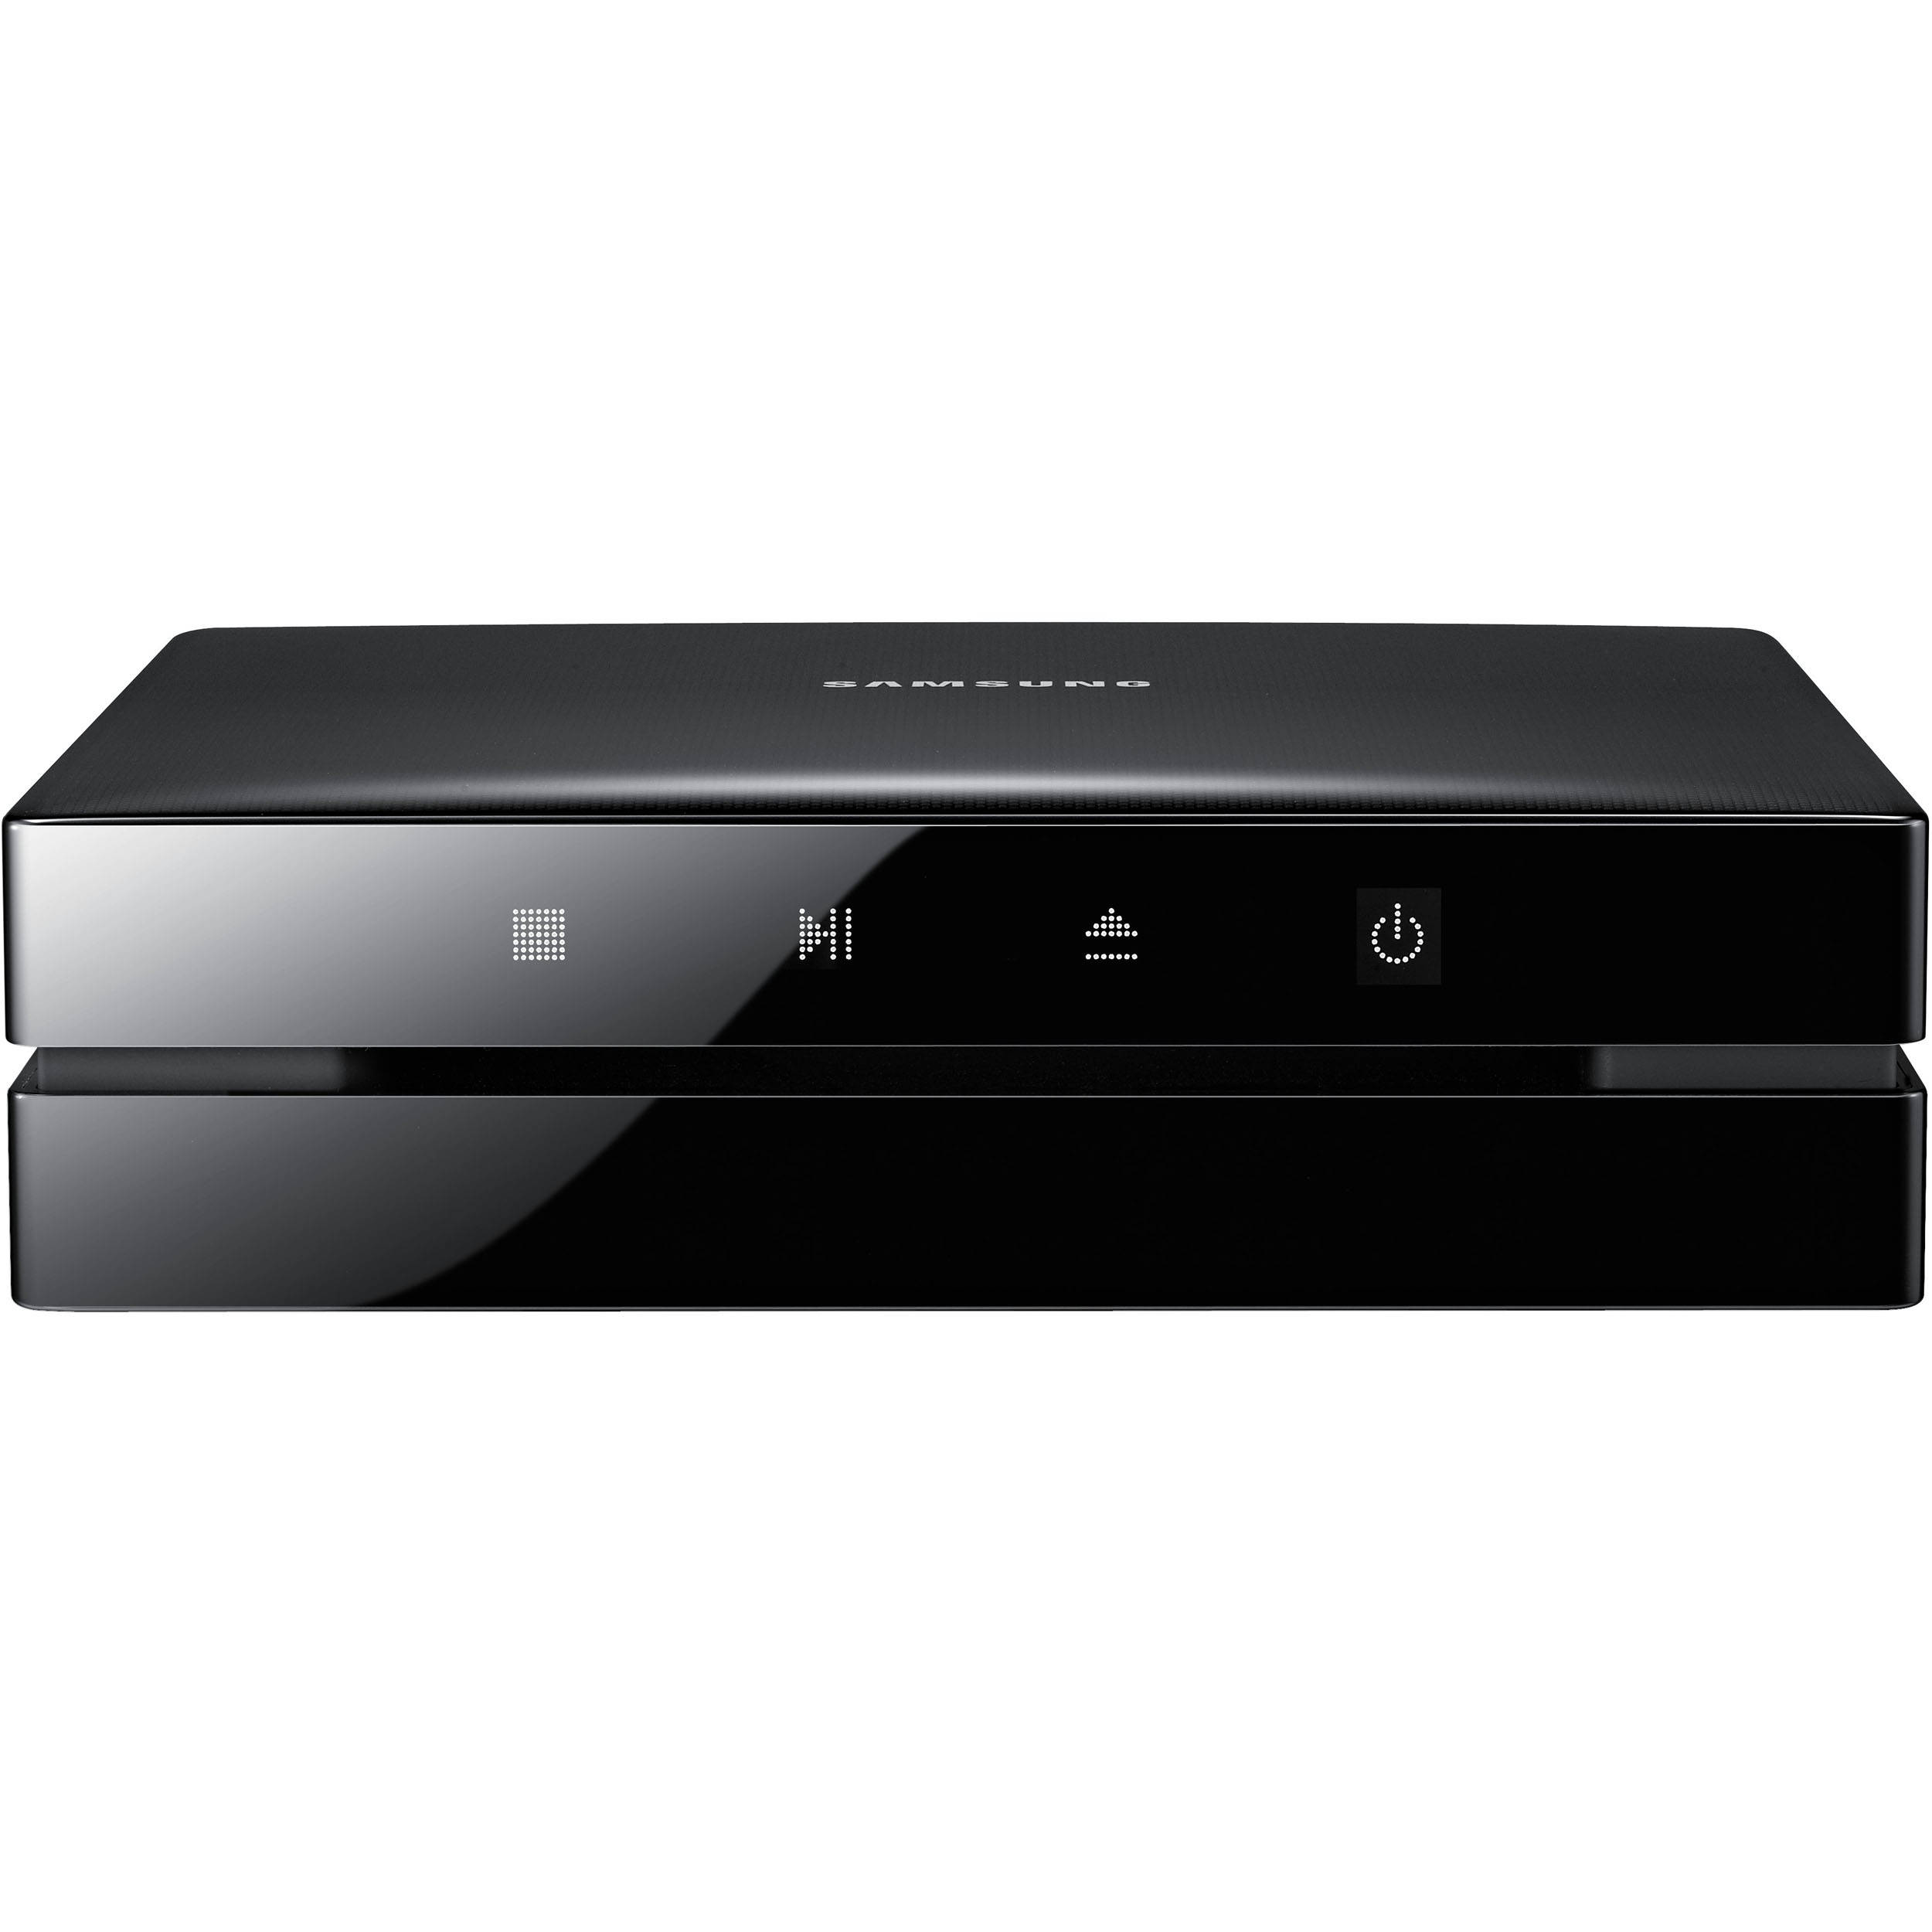 samsung bd e6000 blu ray disc player bd es6000 b h photo video. Black Bedroom Furniture Sets. Home Design Ideas